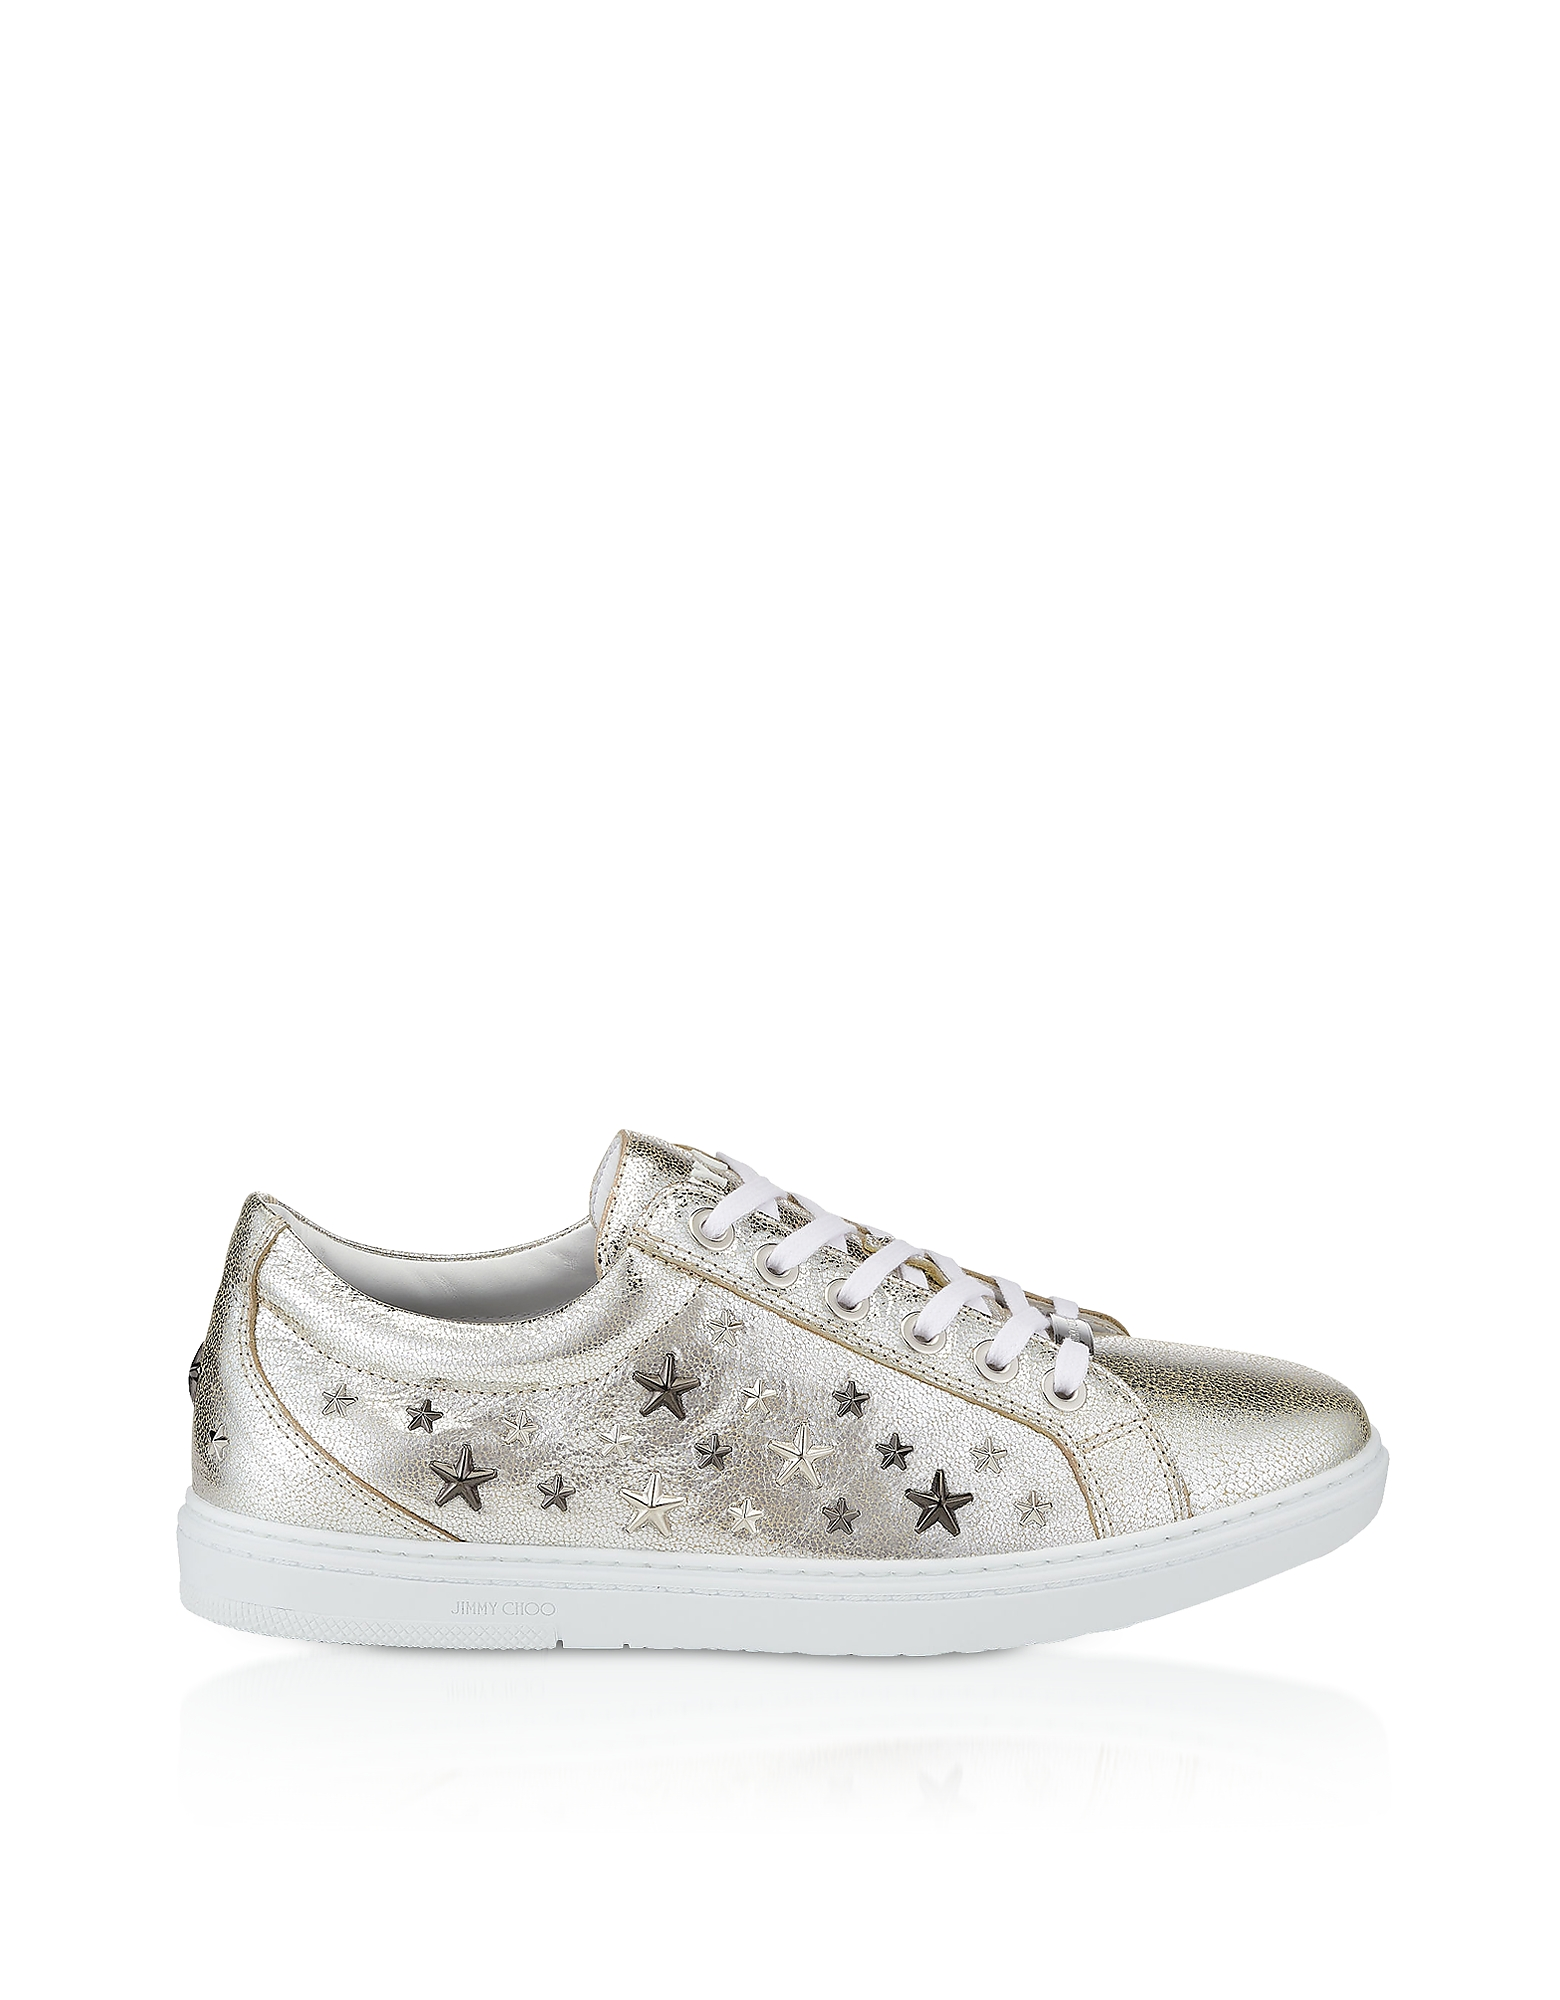 Cash GTA Sneakers in Pelle Champagne con Glitter e Borchie